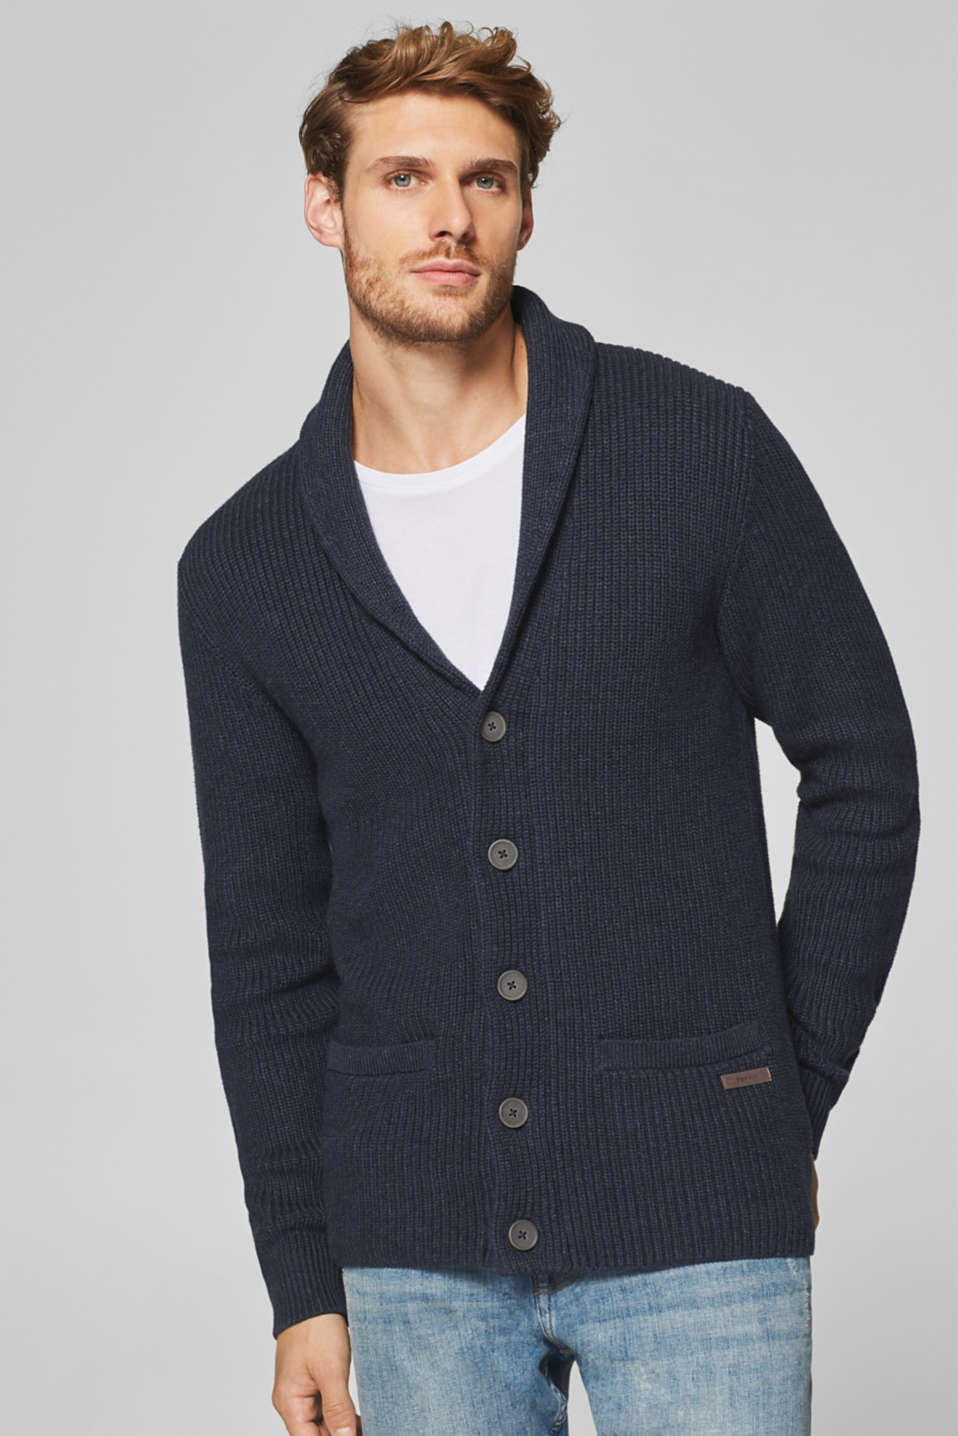 Esprit - Rib knit cardigan in 100% cotton